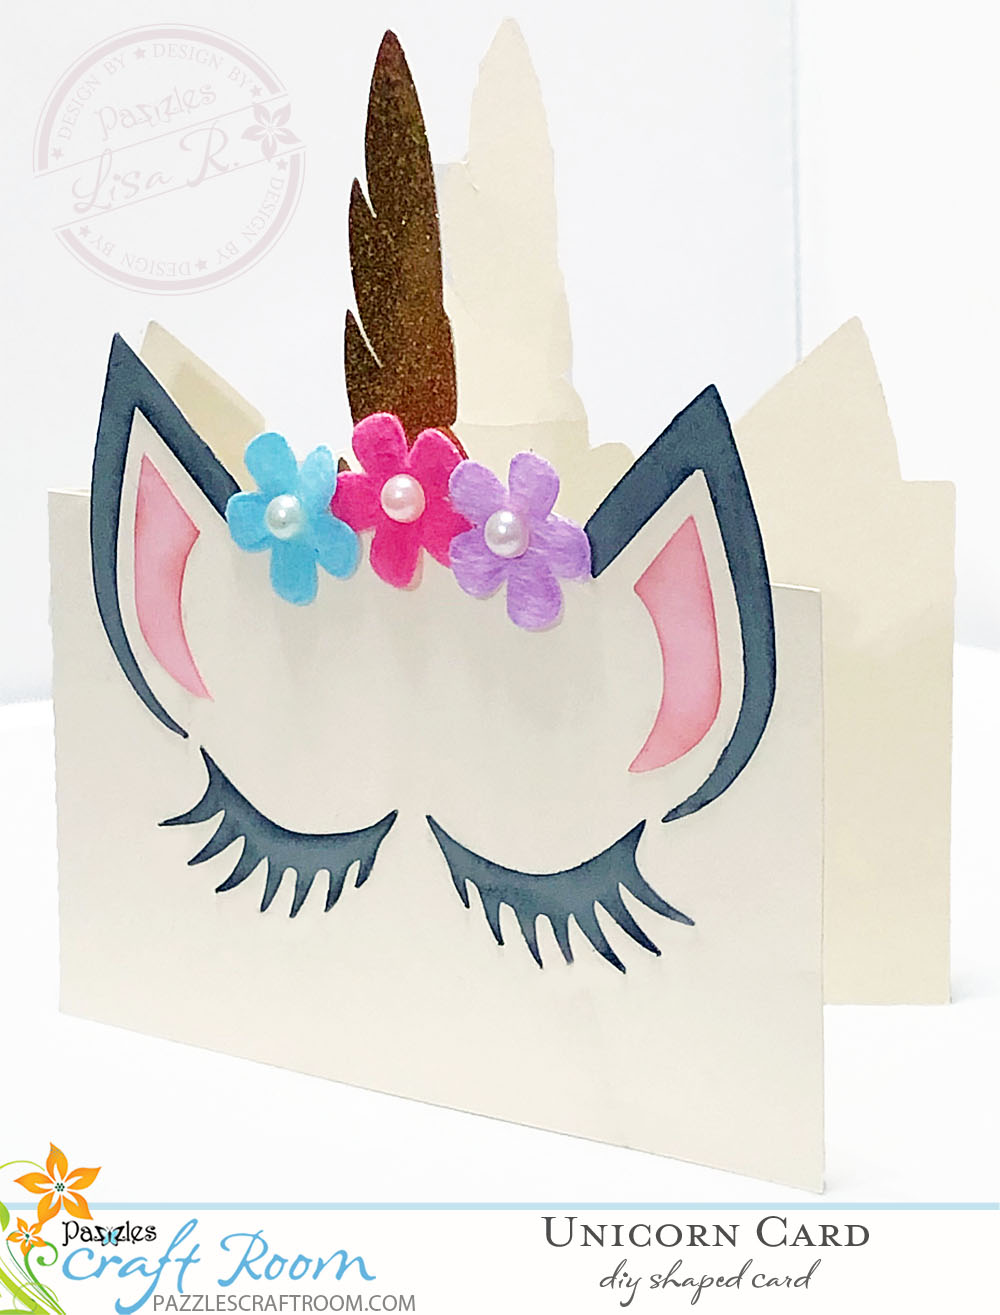 DIY Shaped Unicorn Card - Make for Your Party With Instant Download